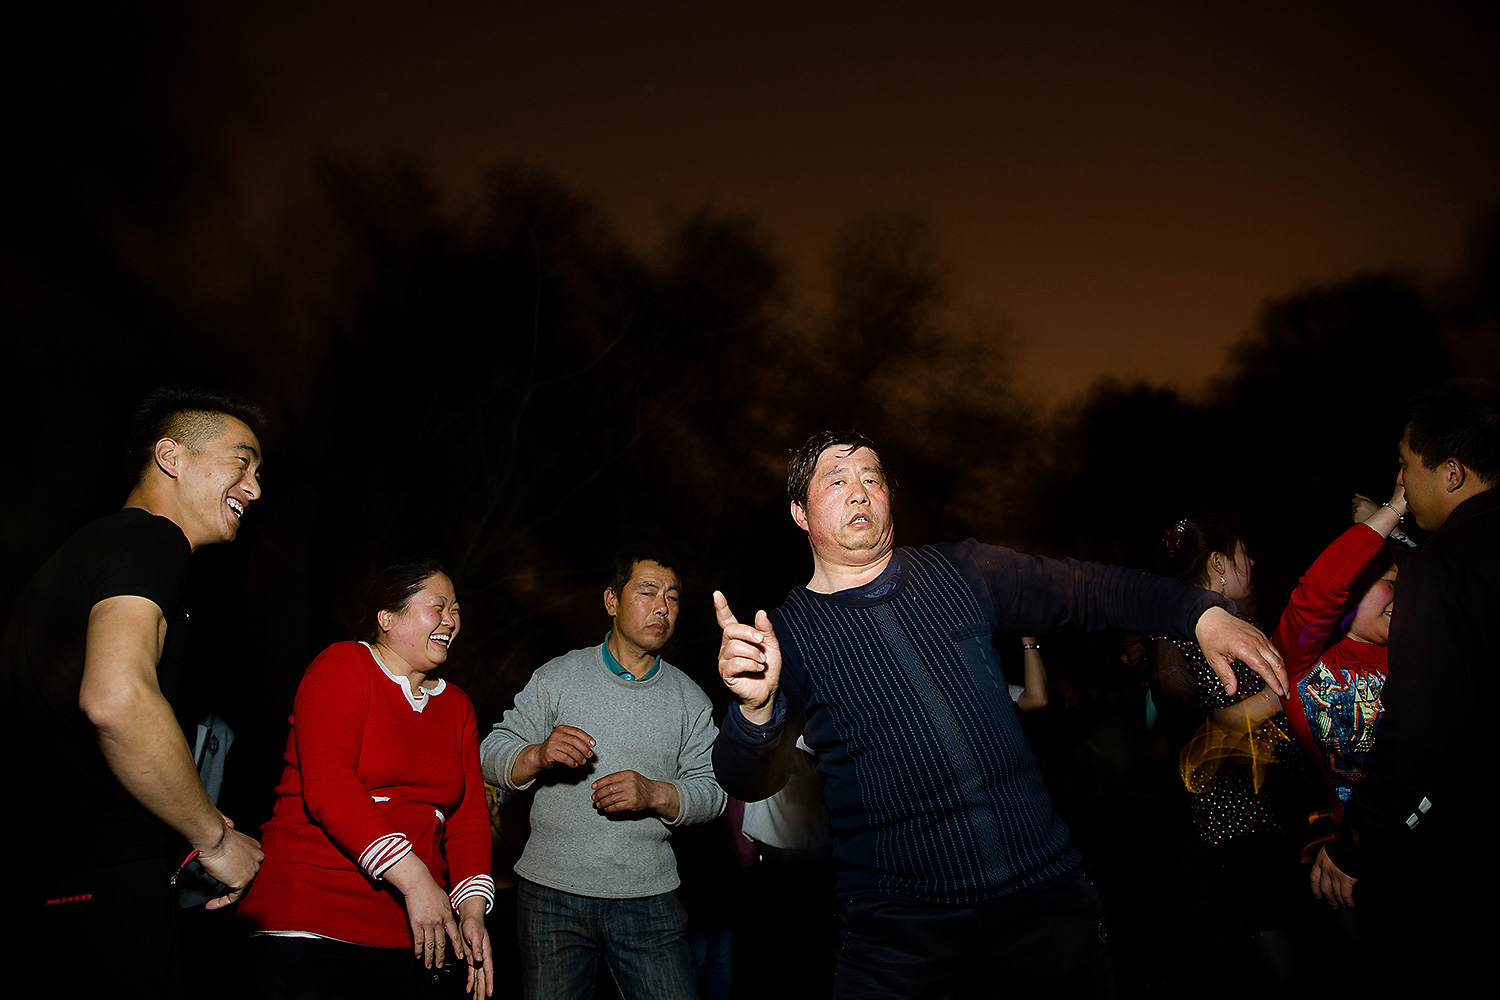 Outdoor disco dancing in Zizhuyuan Park, Beijing. Photo by Wu Hao @wuhaophotography